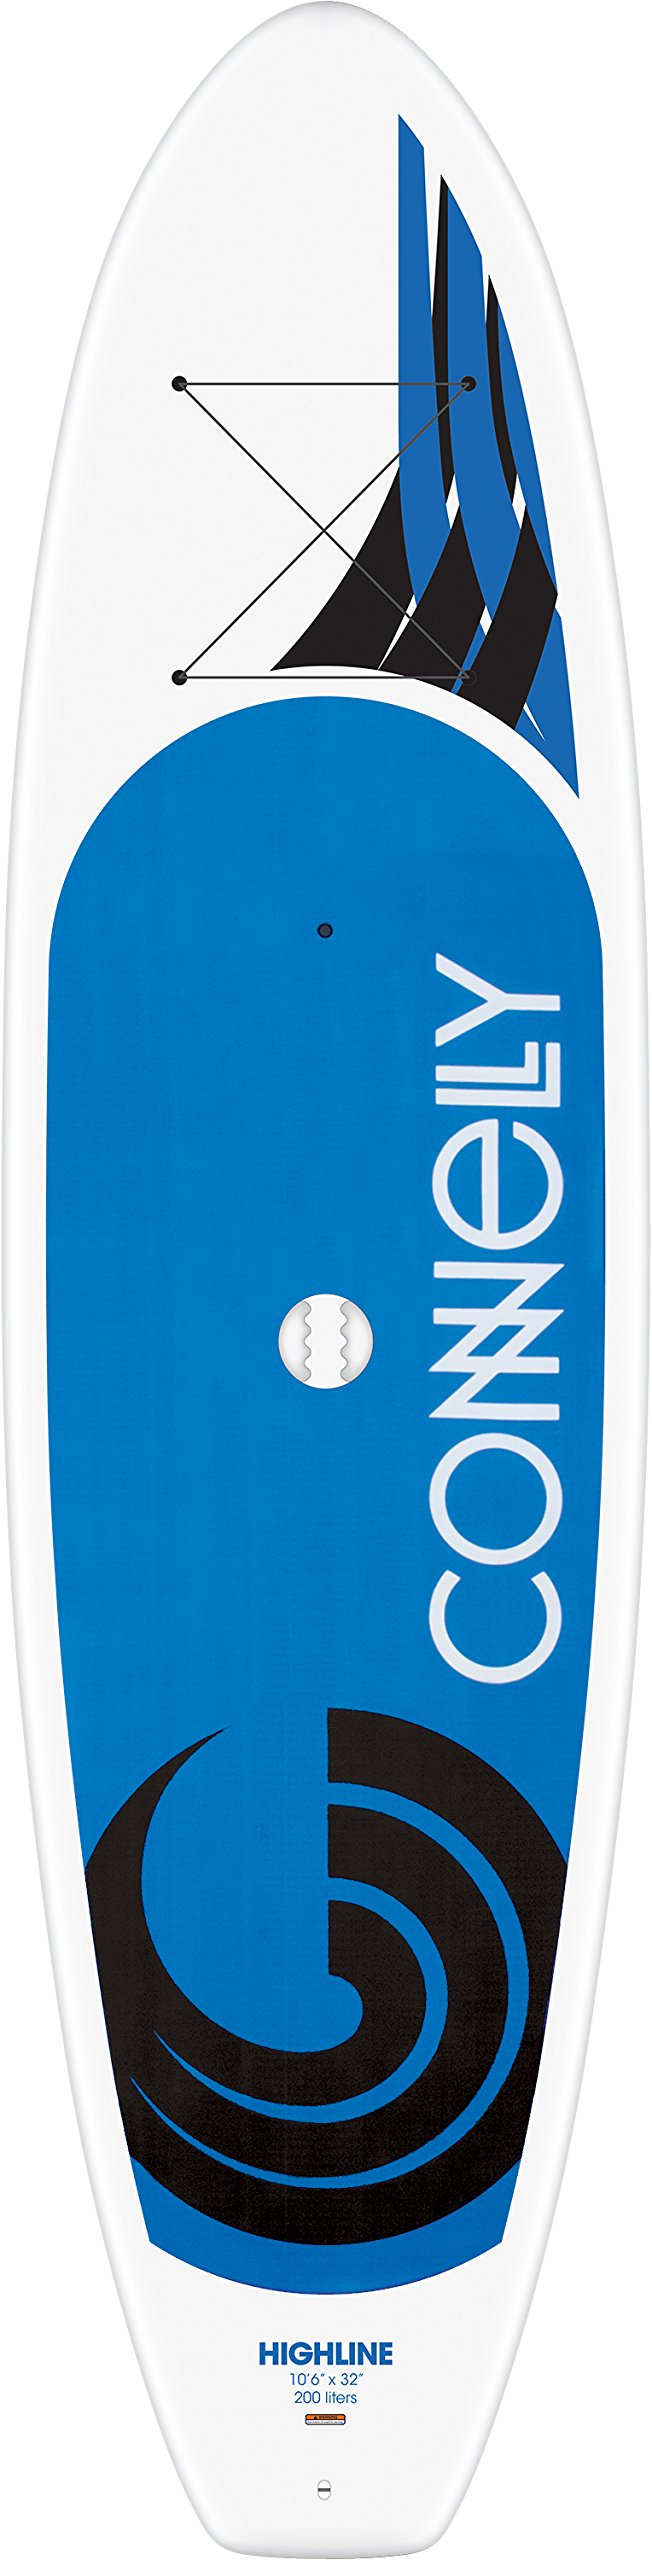 Connelly Highline Stand Up 2017 Paddleboard, 10'6'' x 32'' by CWB